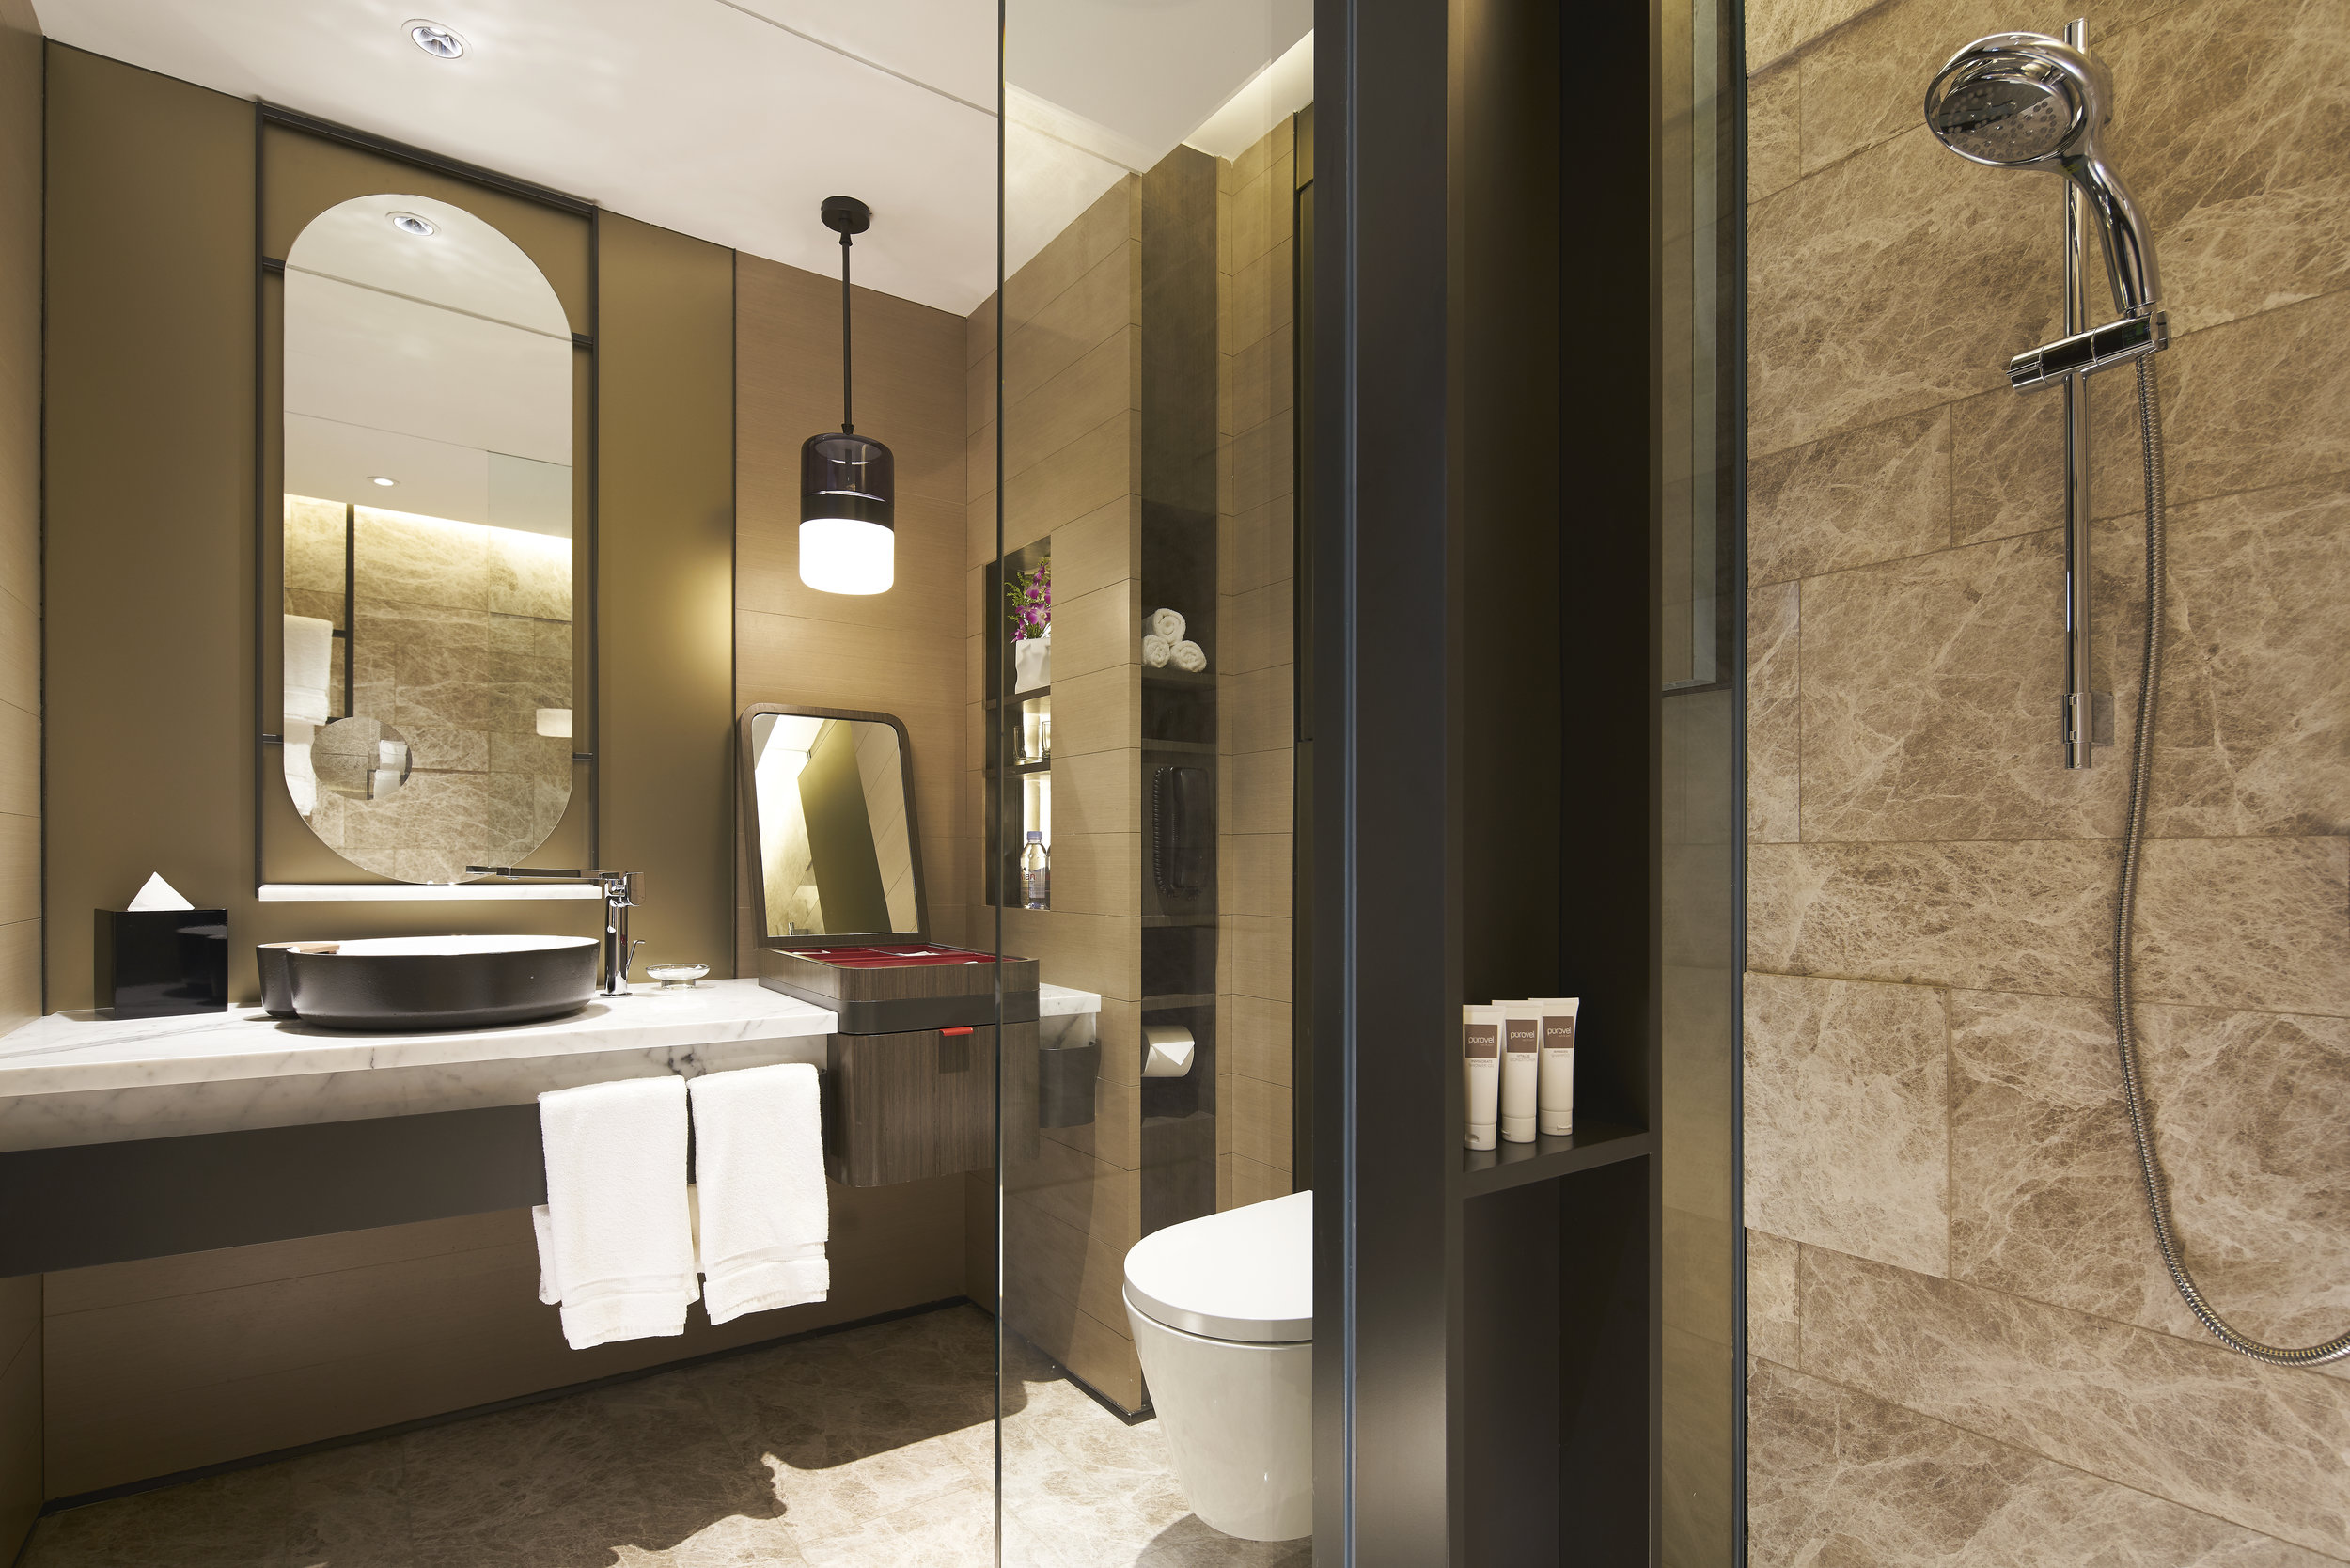 Swiss products were used where possible, such as the bath fixtures by Laufen.